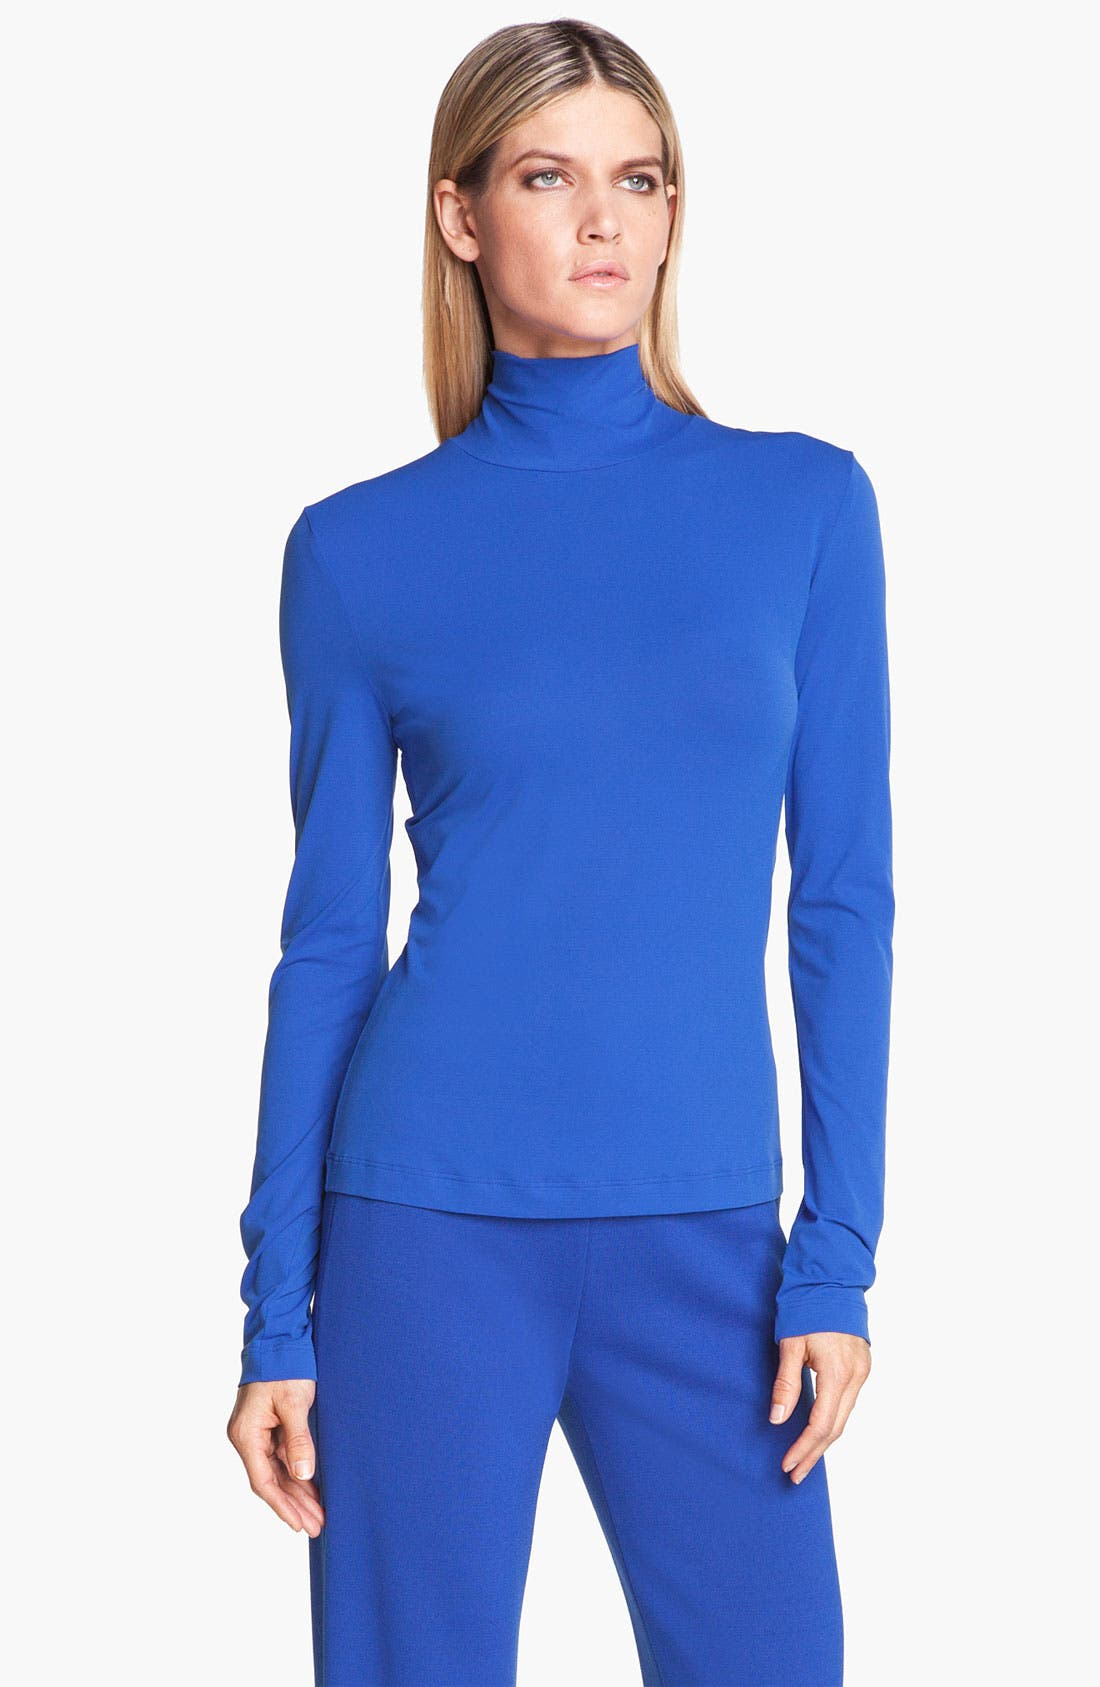 Alternate Image 1 Selected - St. John Collection Fine Jersey Turtleneck